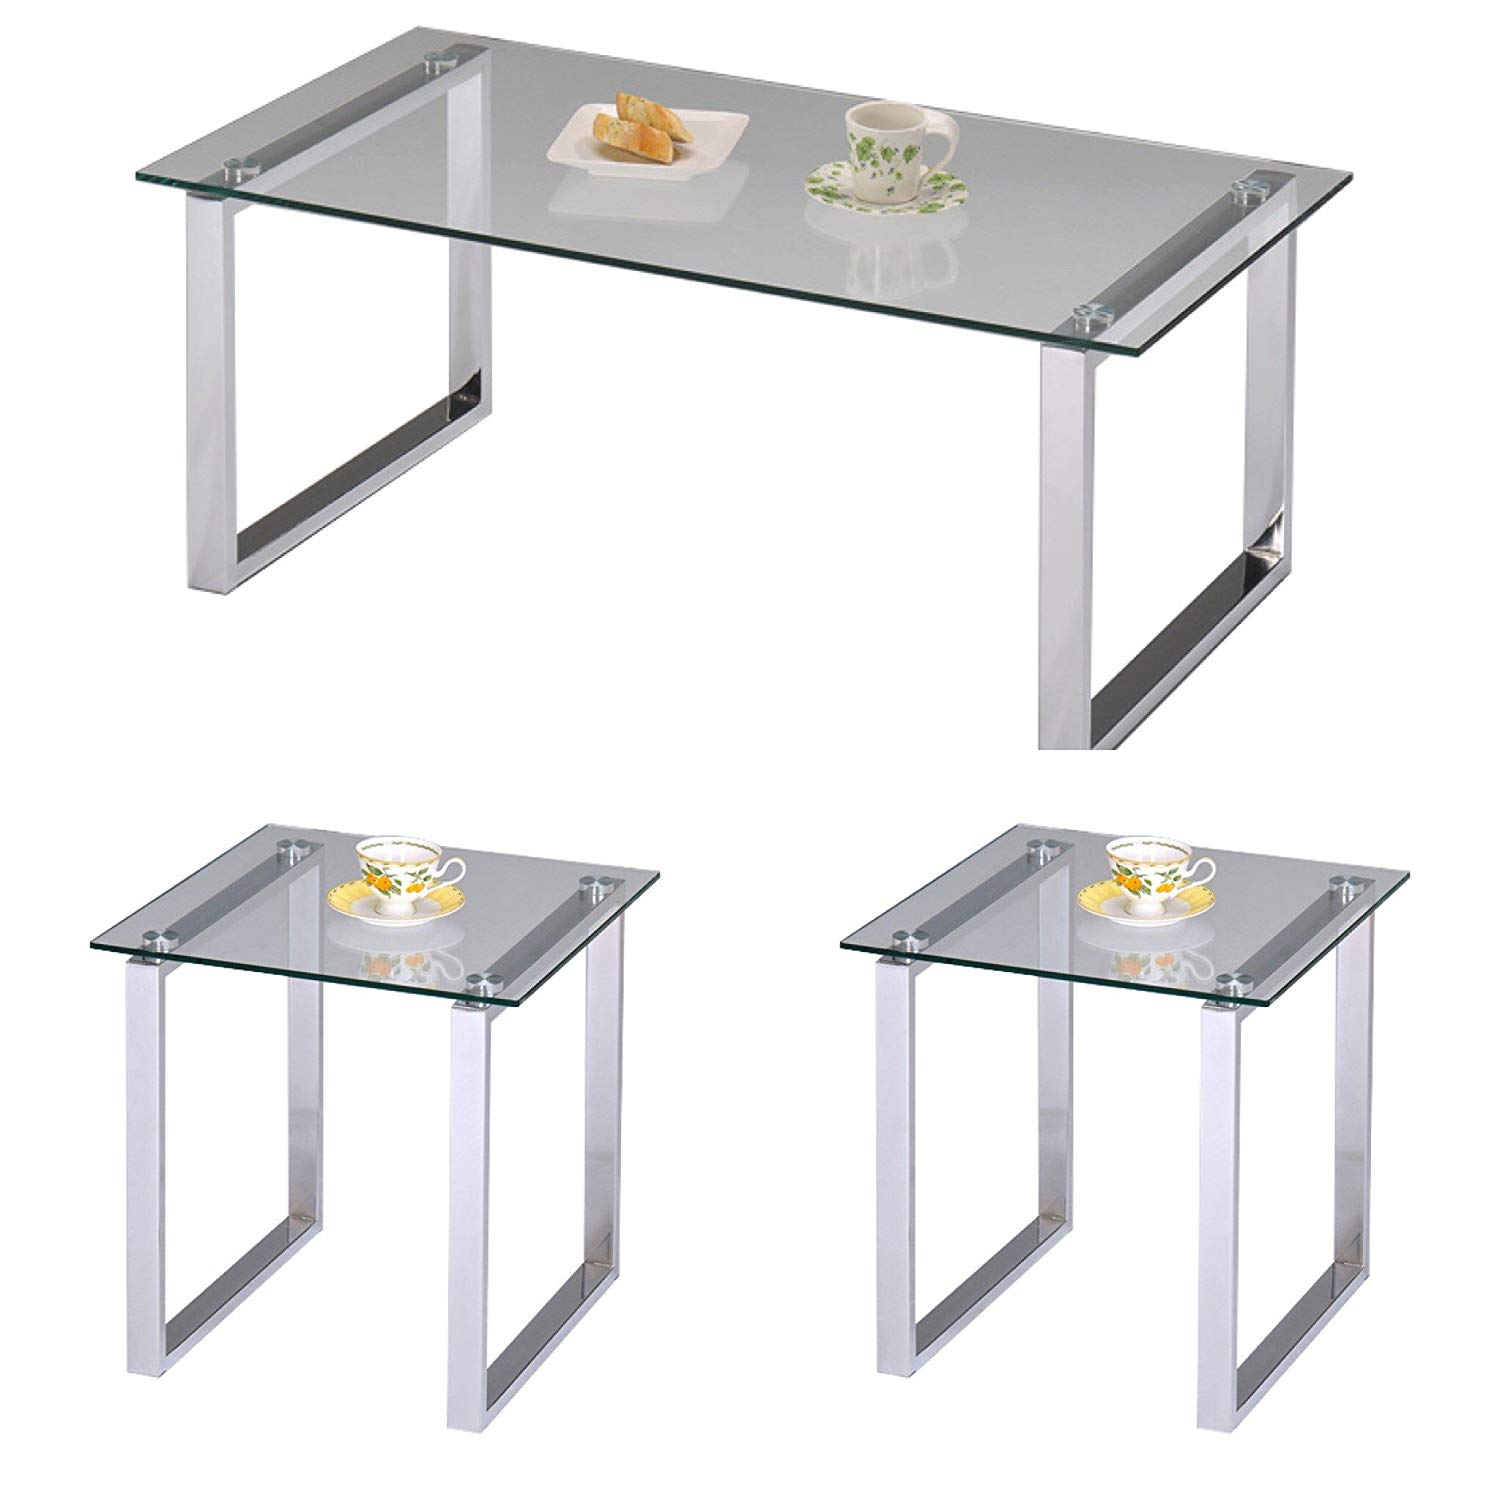 Pilaster Designs - 3 Pc. Modern Chrome Finish With Glass Top Cocktail Coffee Table & 2 End Tables